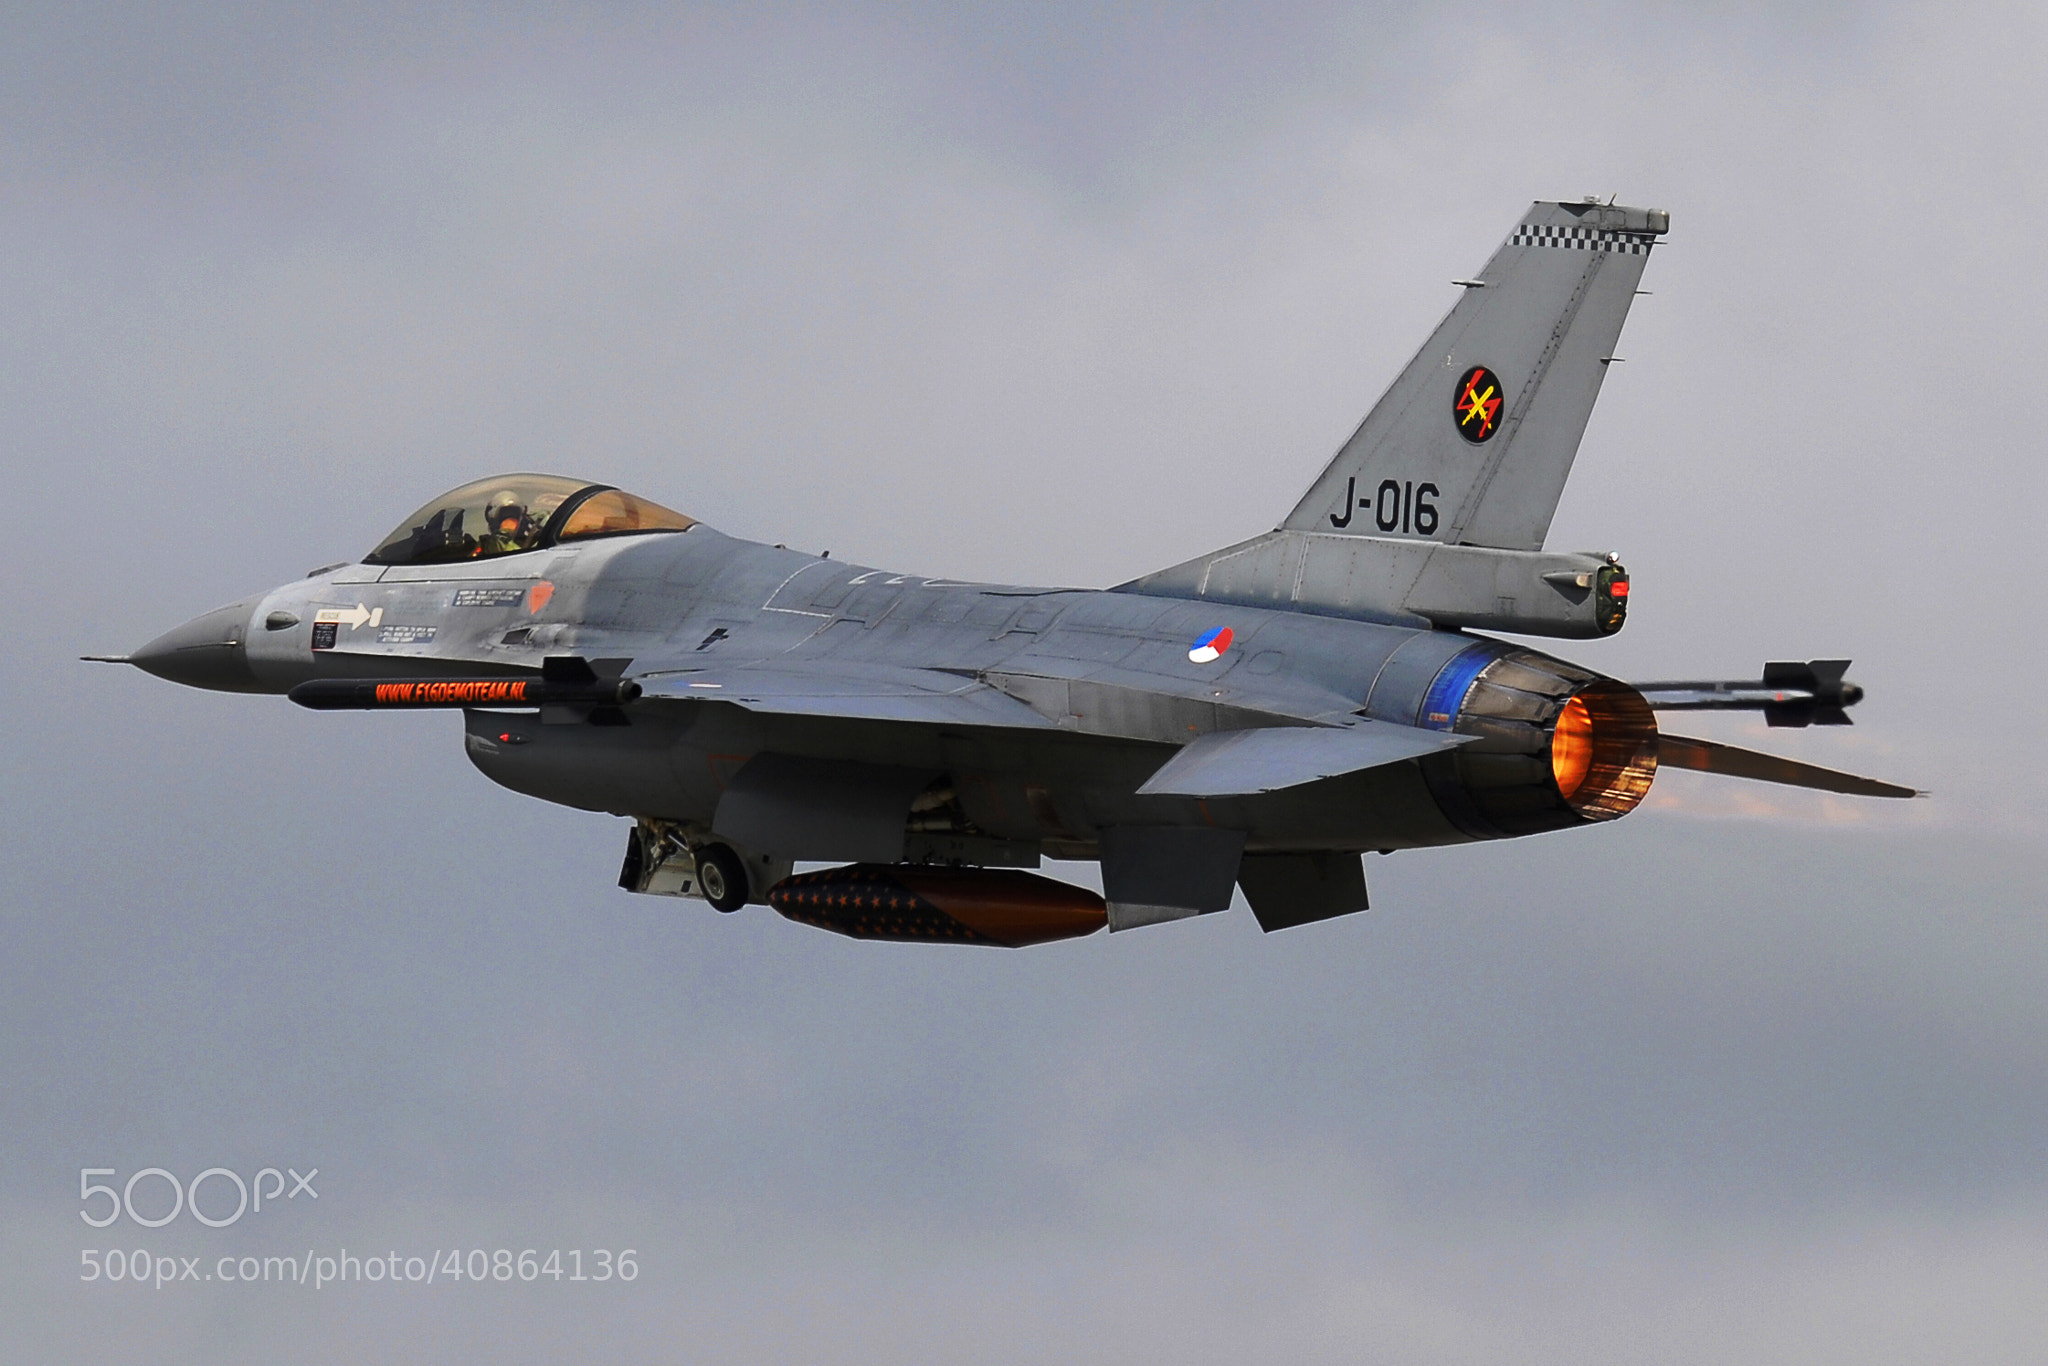 Photograph RNLAF F-16 by Jaap Zwagemaker on 500px